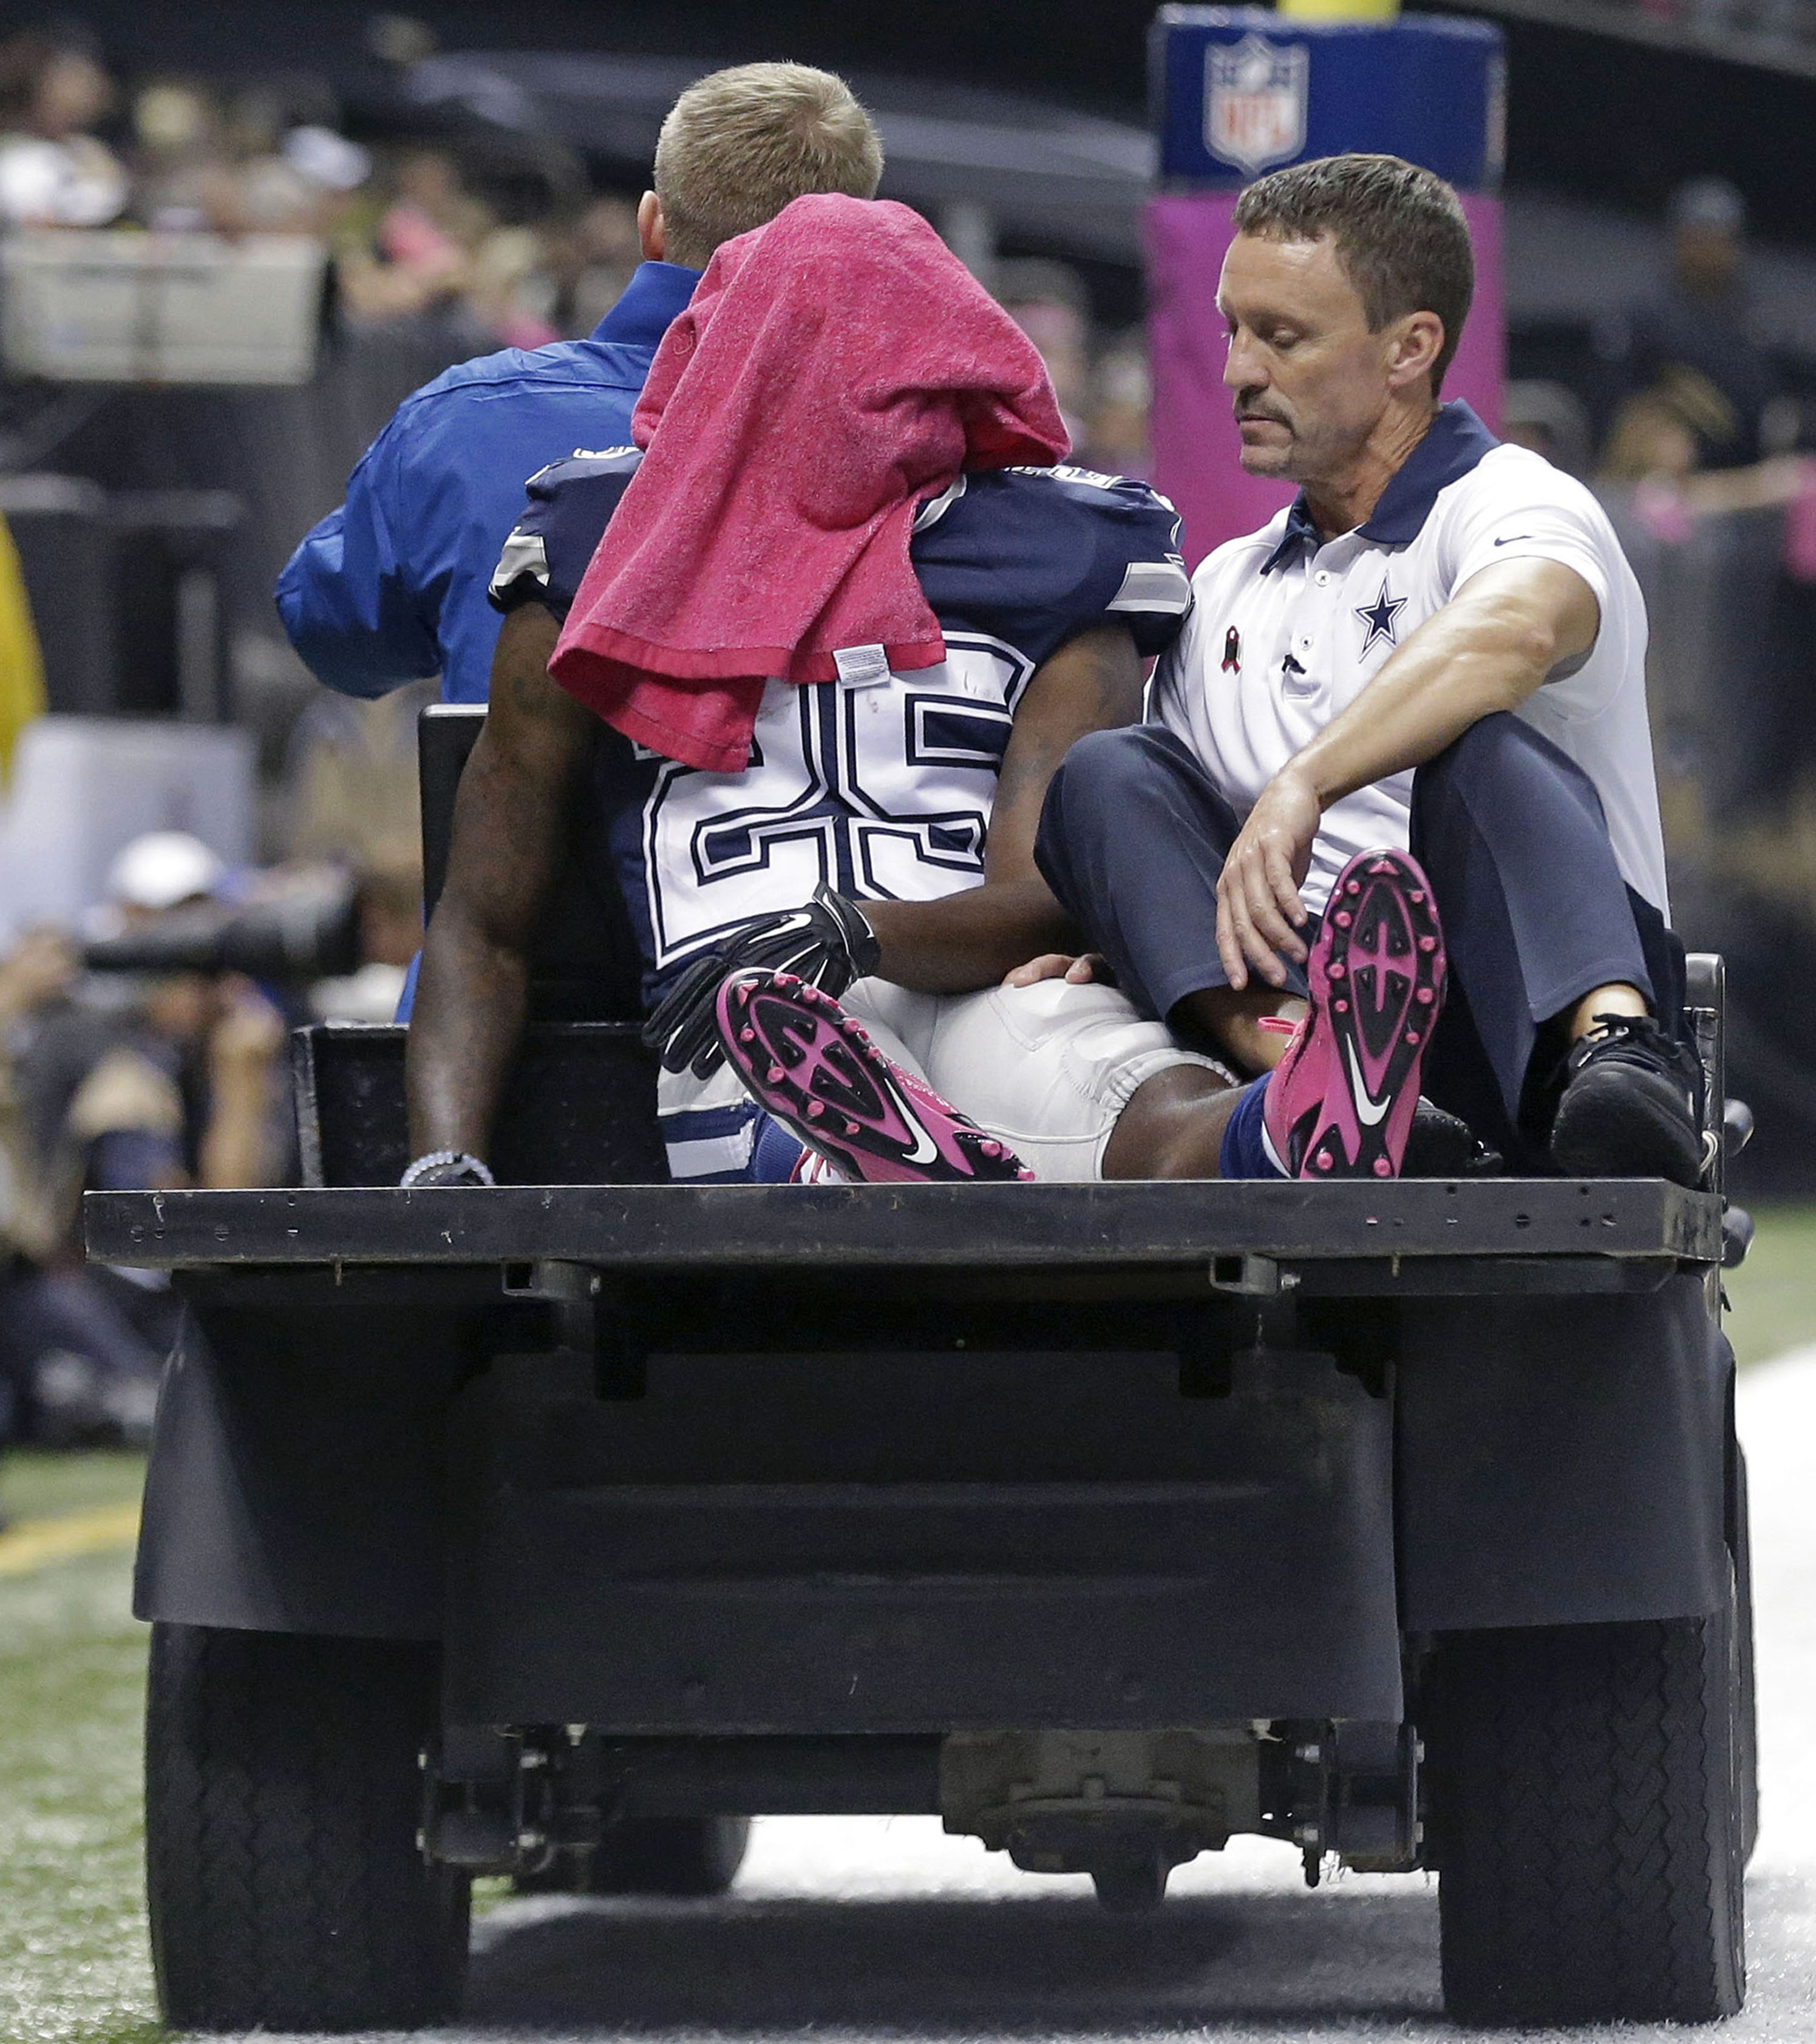 Dallas Cowboys running back Lance Dunbar (25) is carted off the field in the second half of an NFL football game against the New Orleans Saints in New Orleans, Sunday, Oct. 4, 2015. (AP Photo/Brynn Anderson)